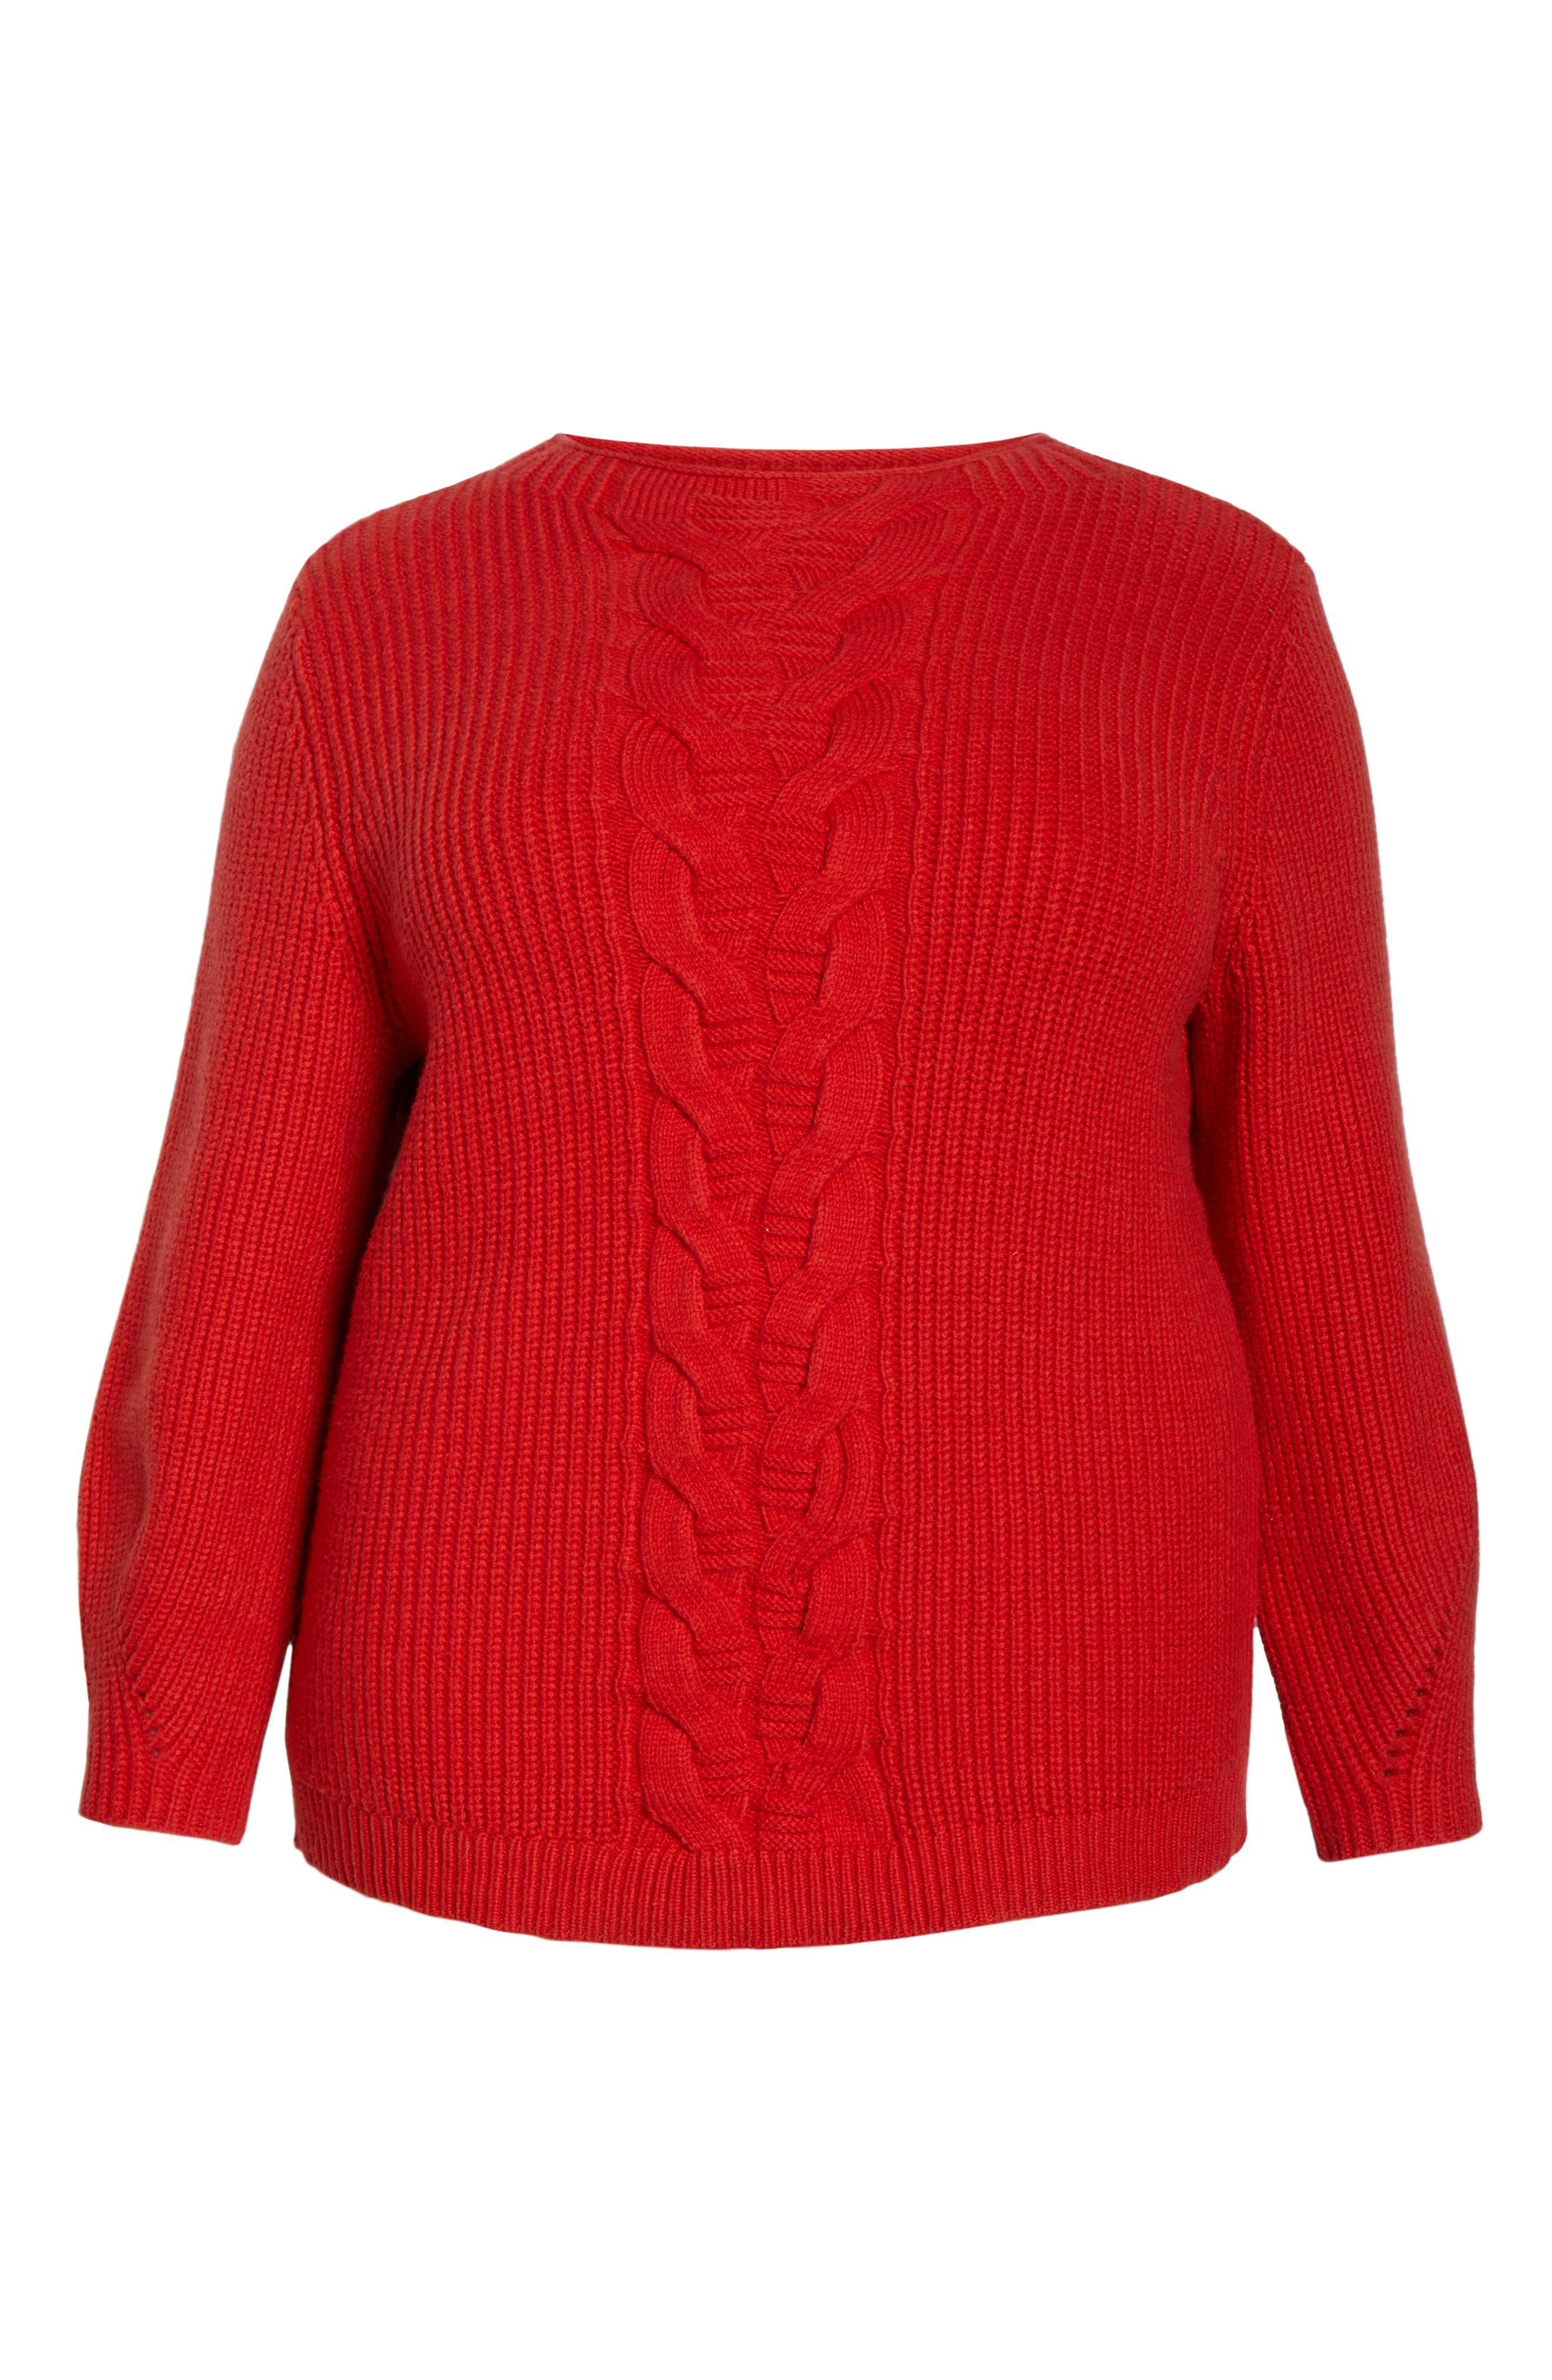 Cable Knit Sweater,                             Alternate thumbnail 6, color,                             RED BLOOM